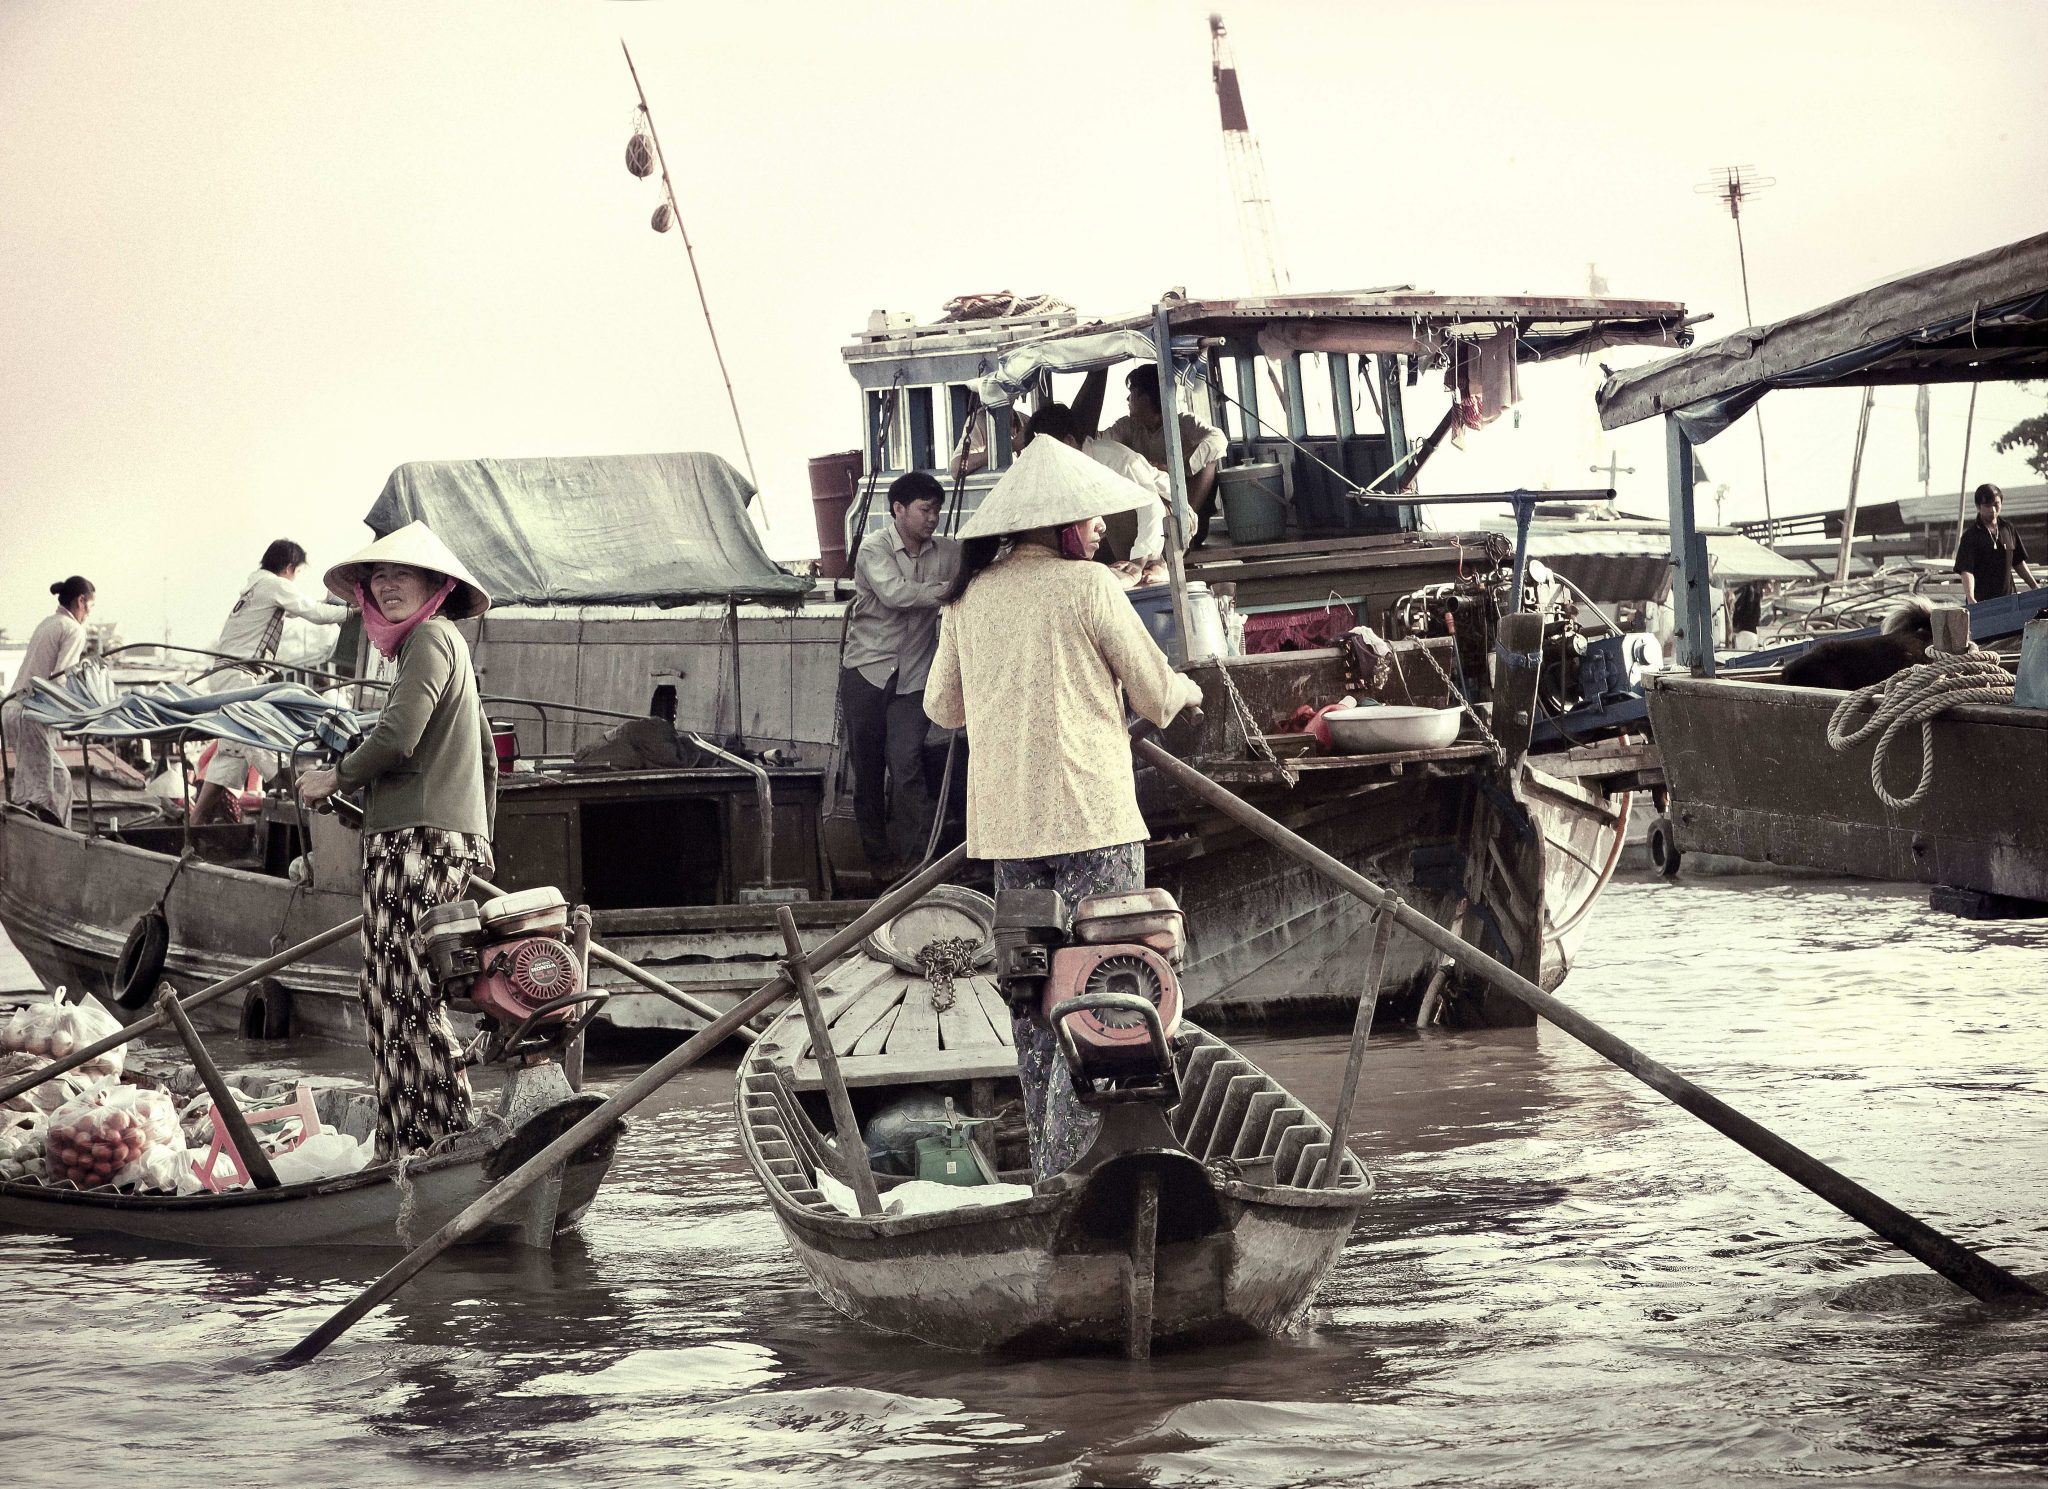 China's Plans for the Mekong River